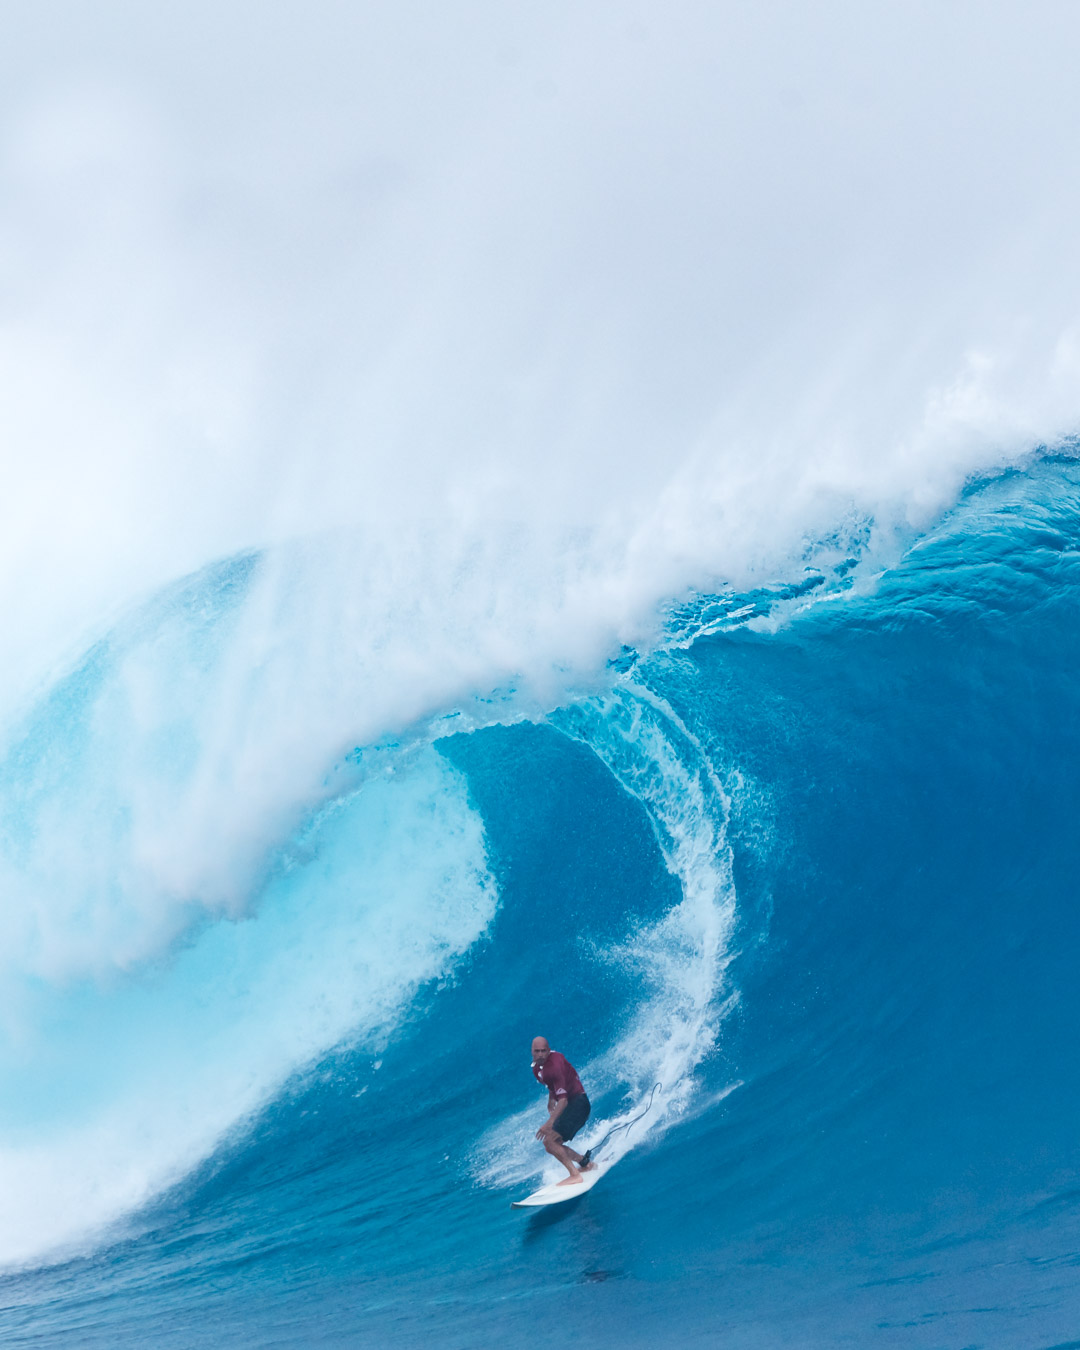 Cloudbreak thundercloud swell 2018-8.jpg